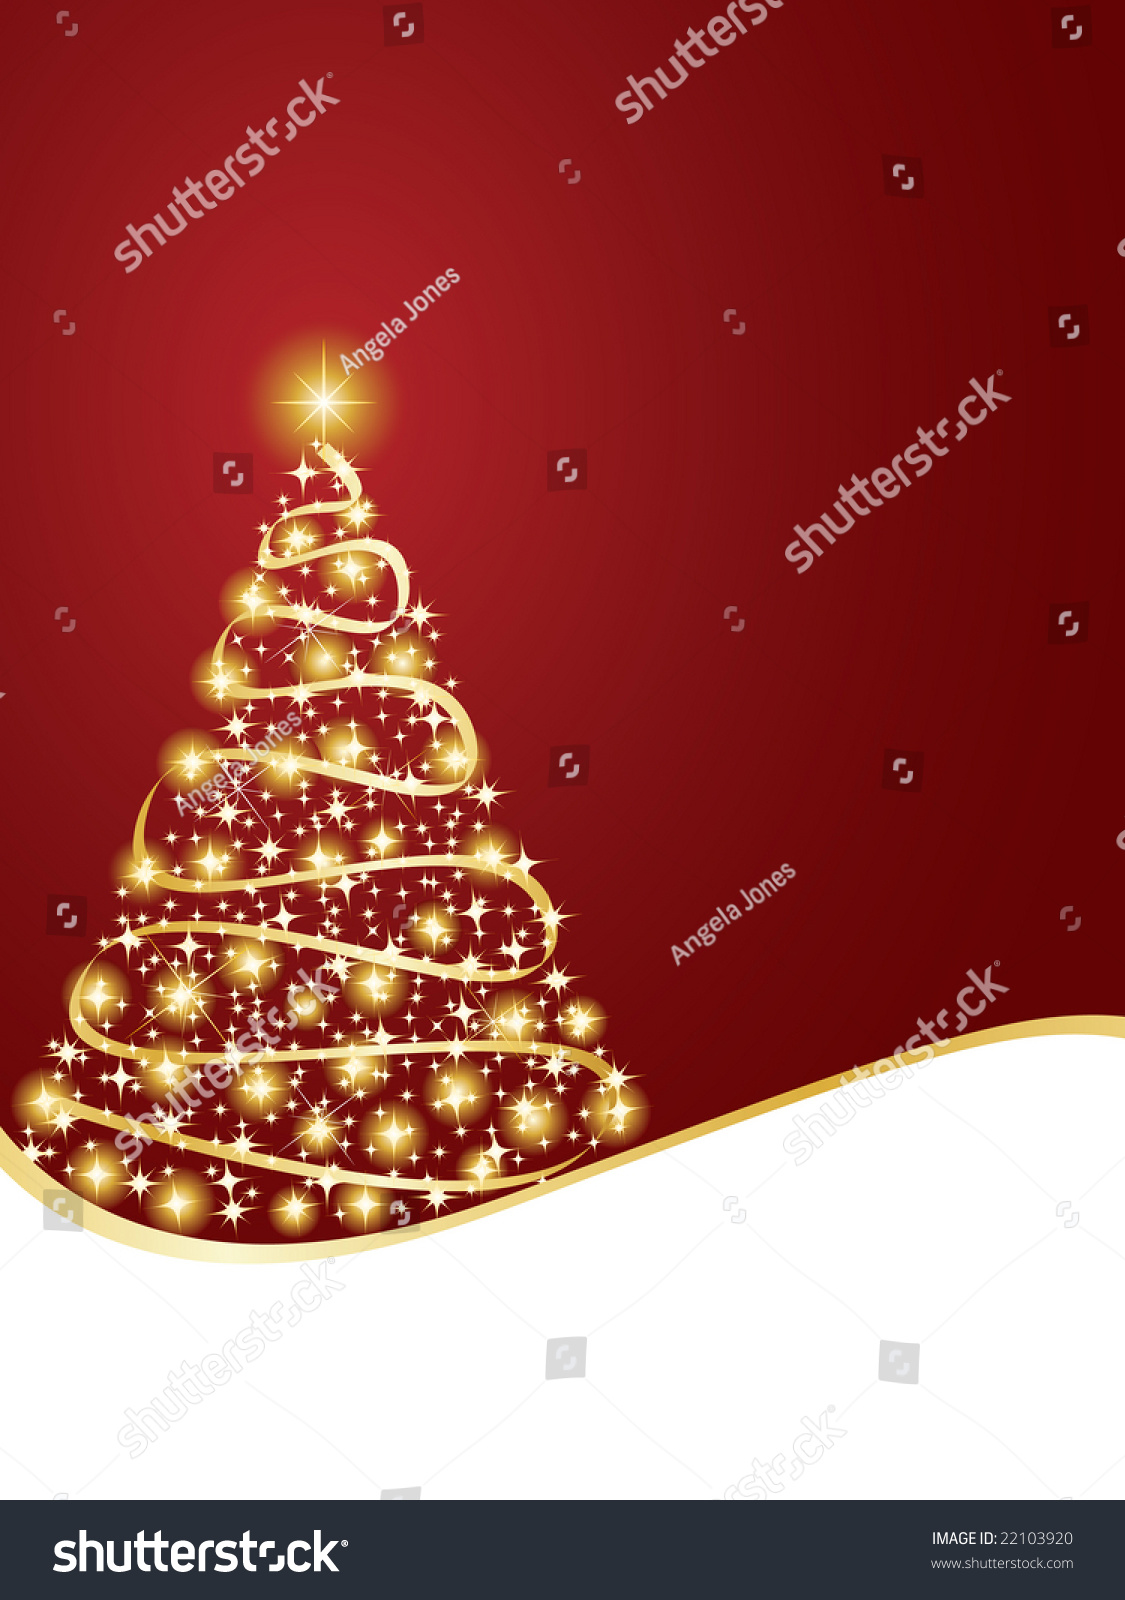 Twinkly Christmas Tree Background Stock Vector 22103920 - Shutterstock